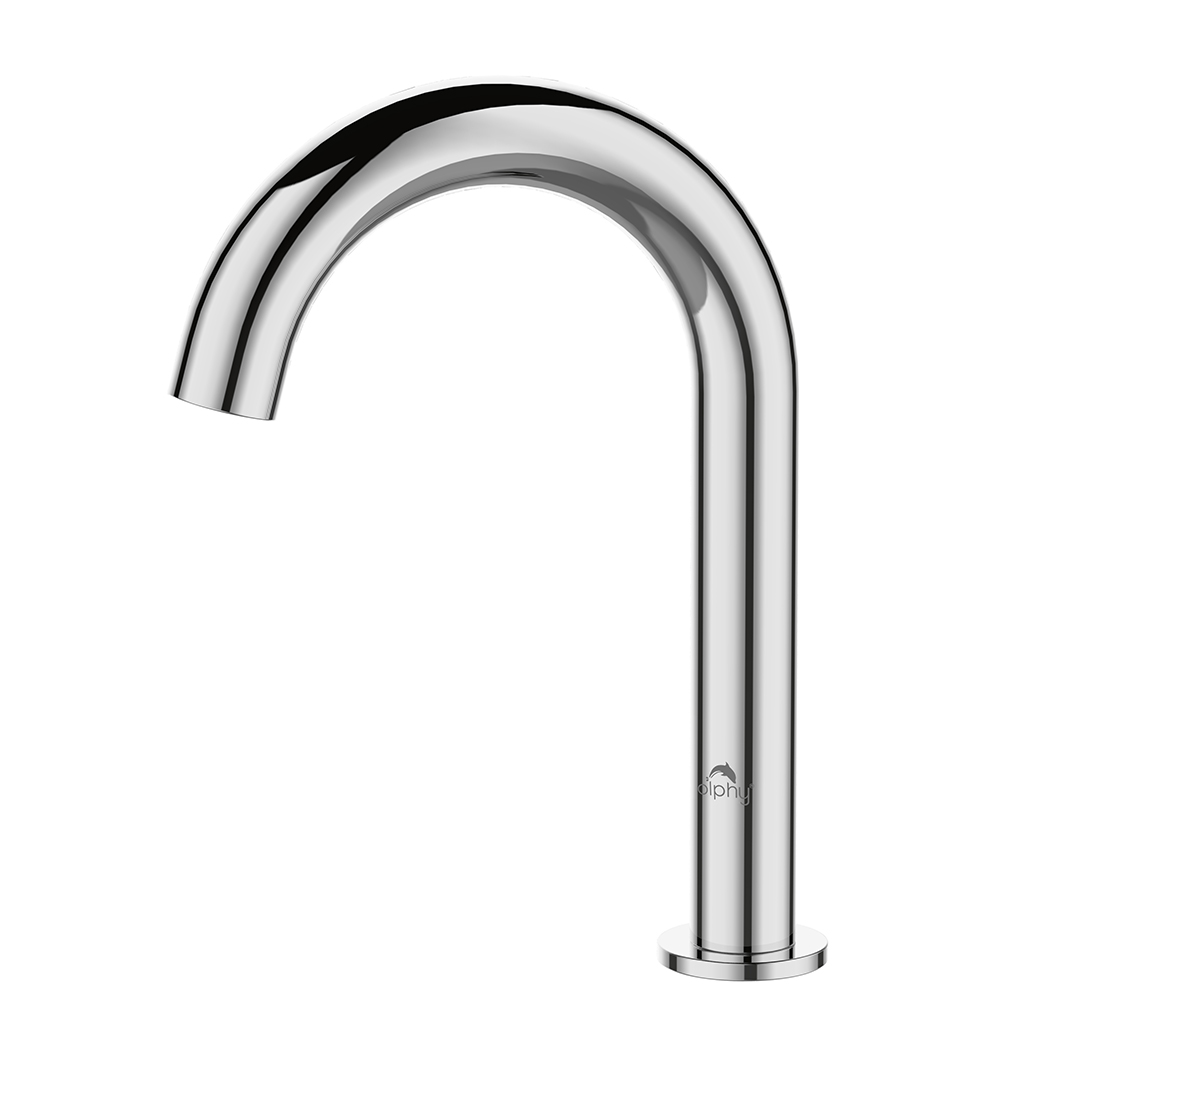 Stainless-Steel Automatic Touchless Sensor Tap